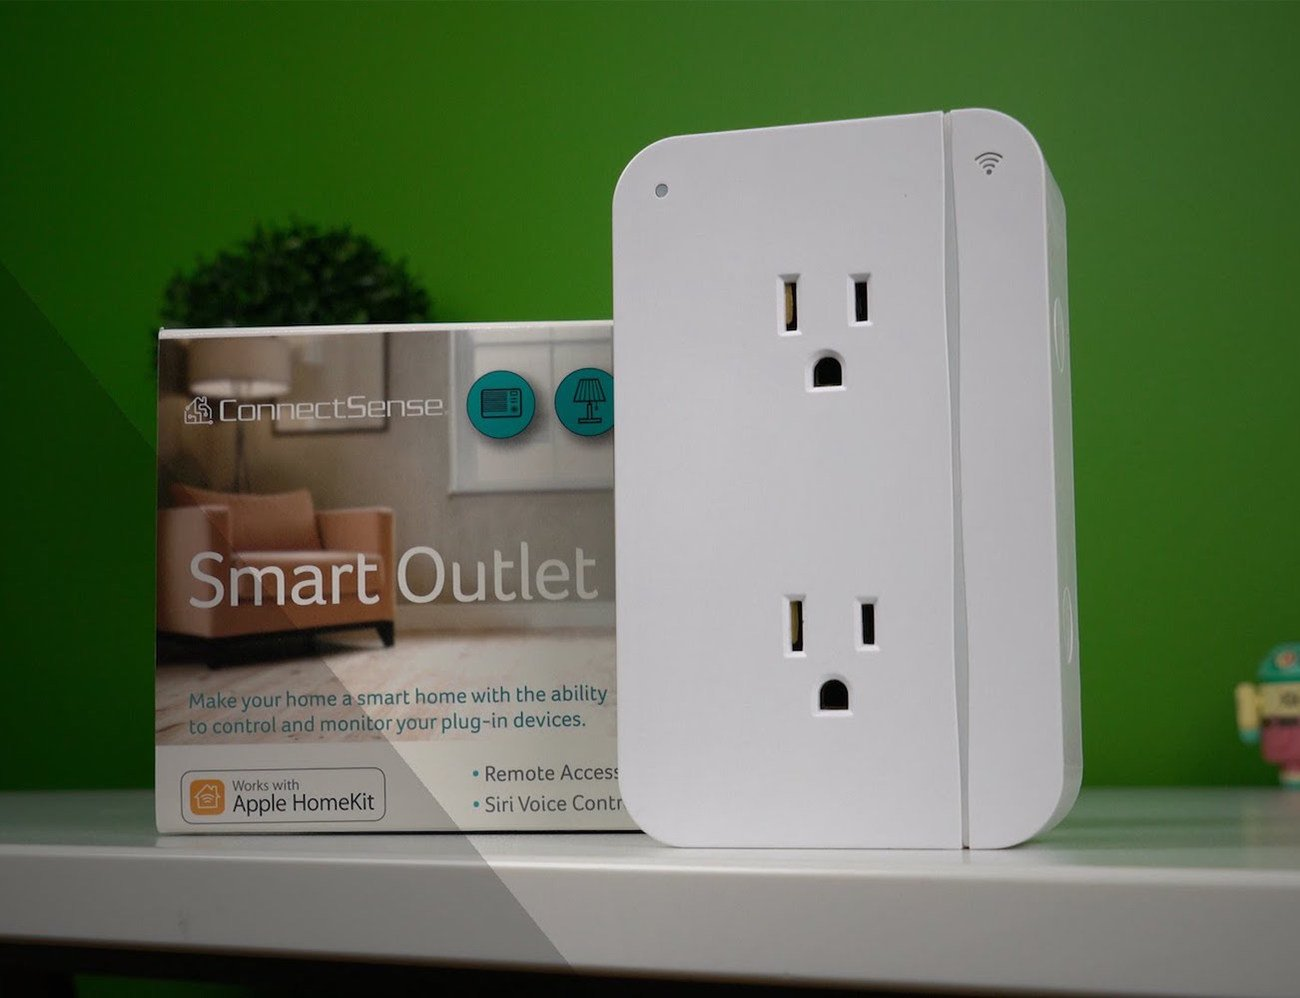 ConnectSense Smart Outlet